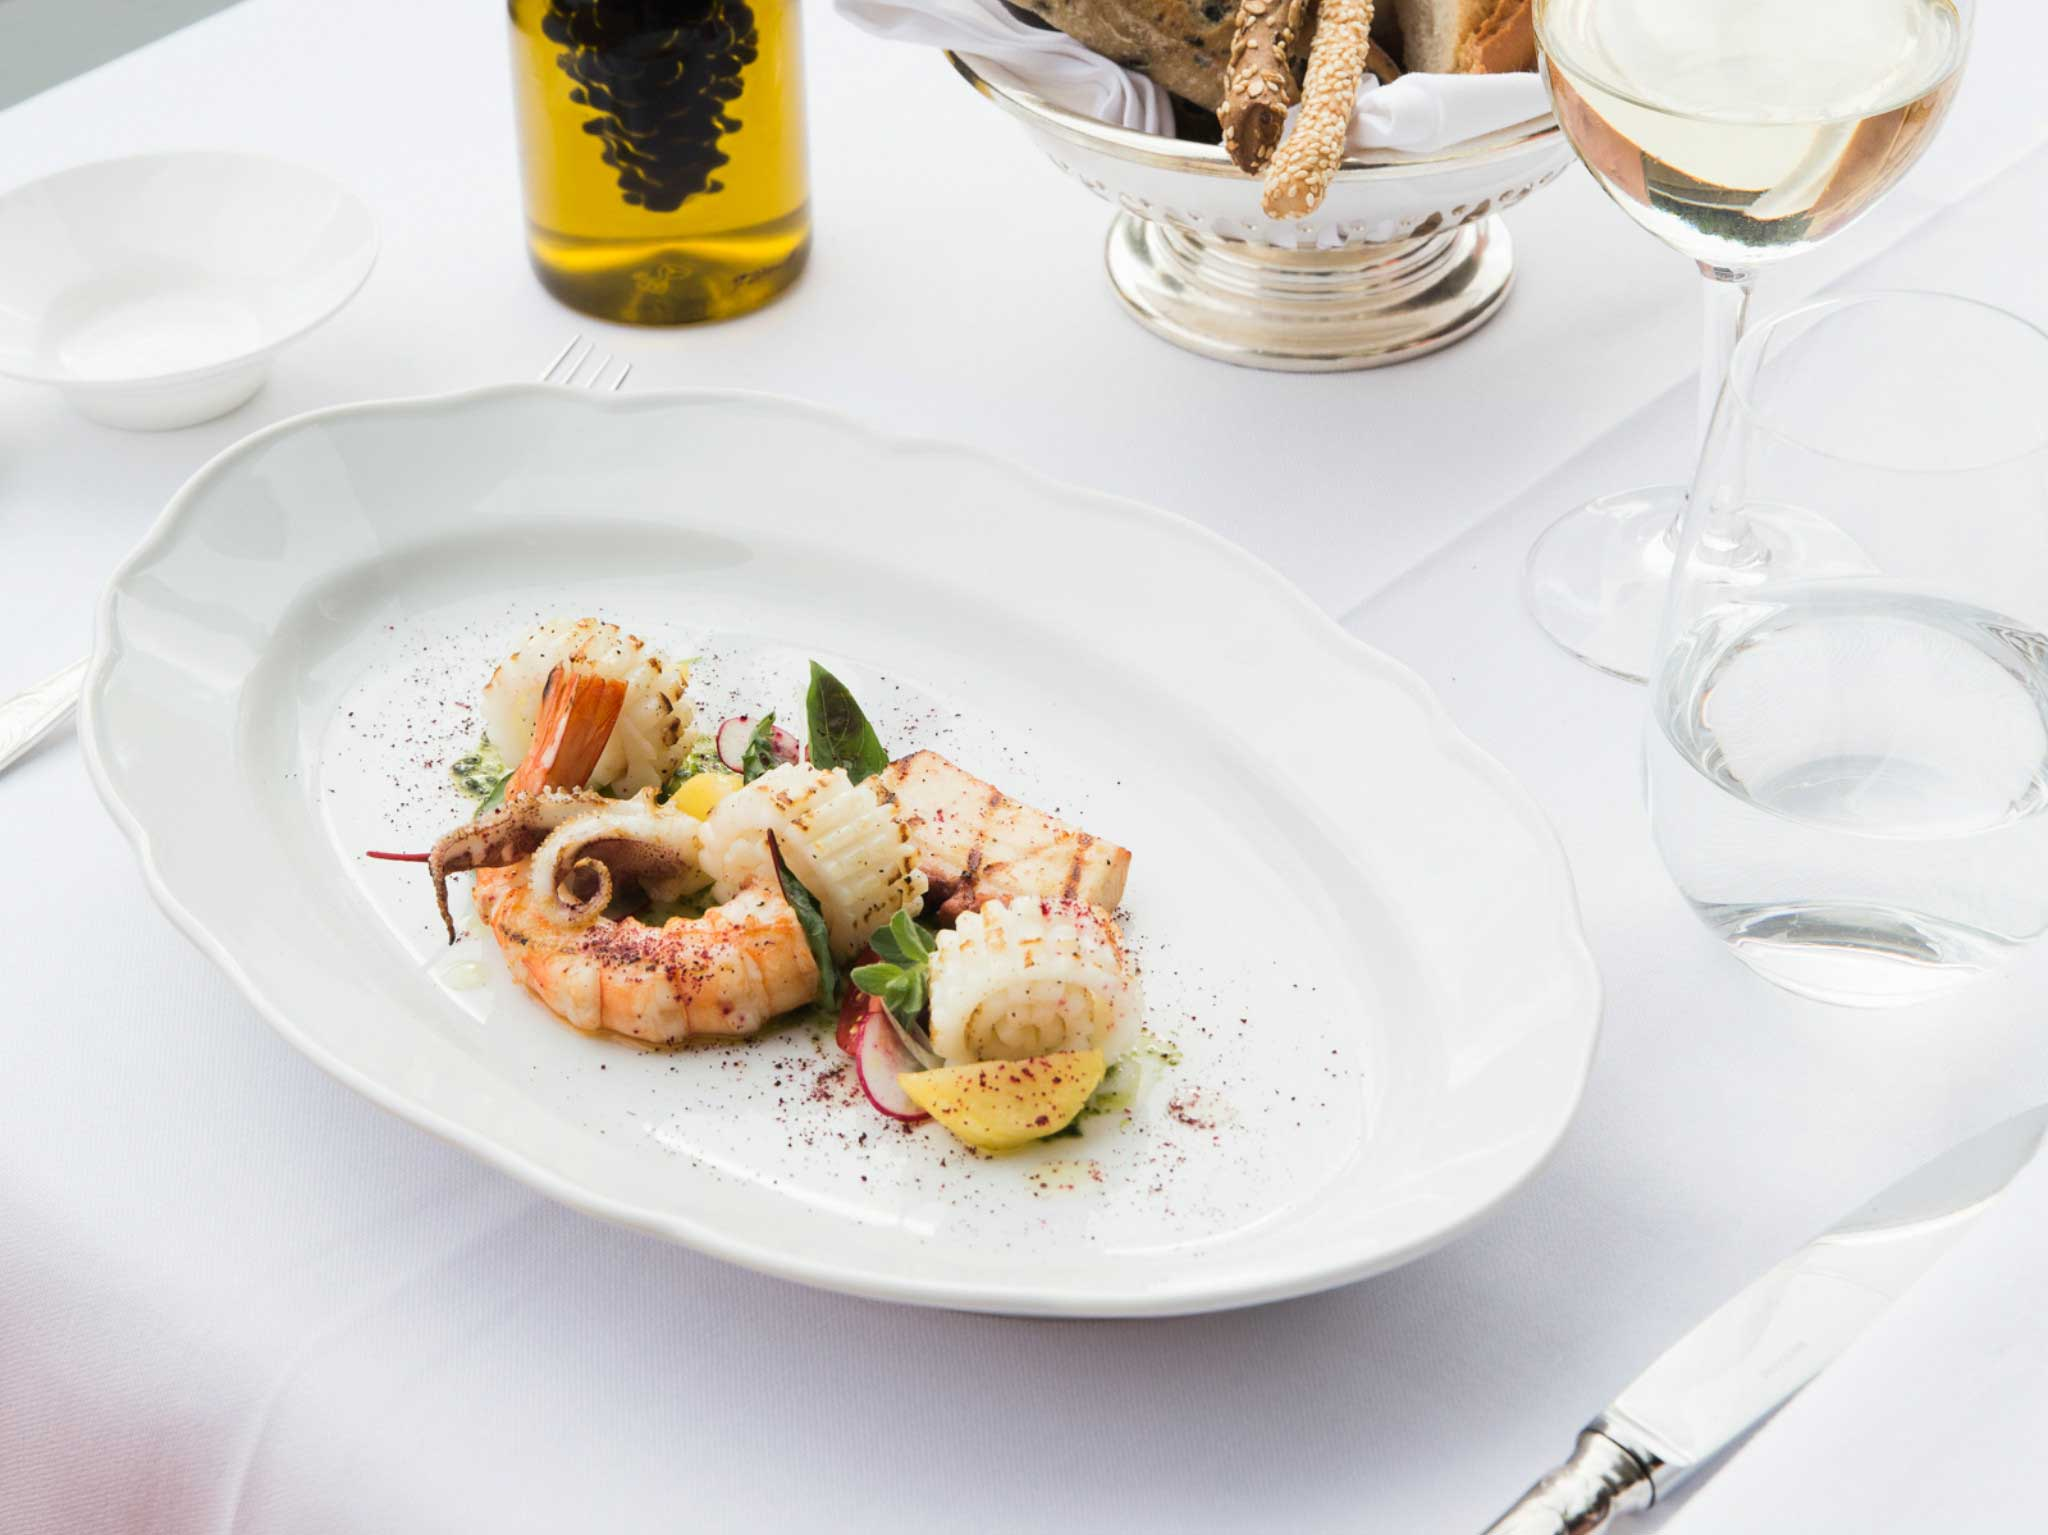 cooked food in oblong white plate